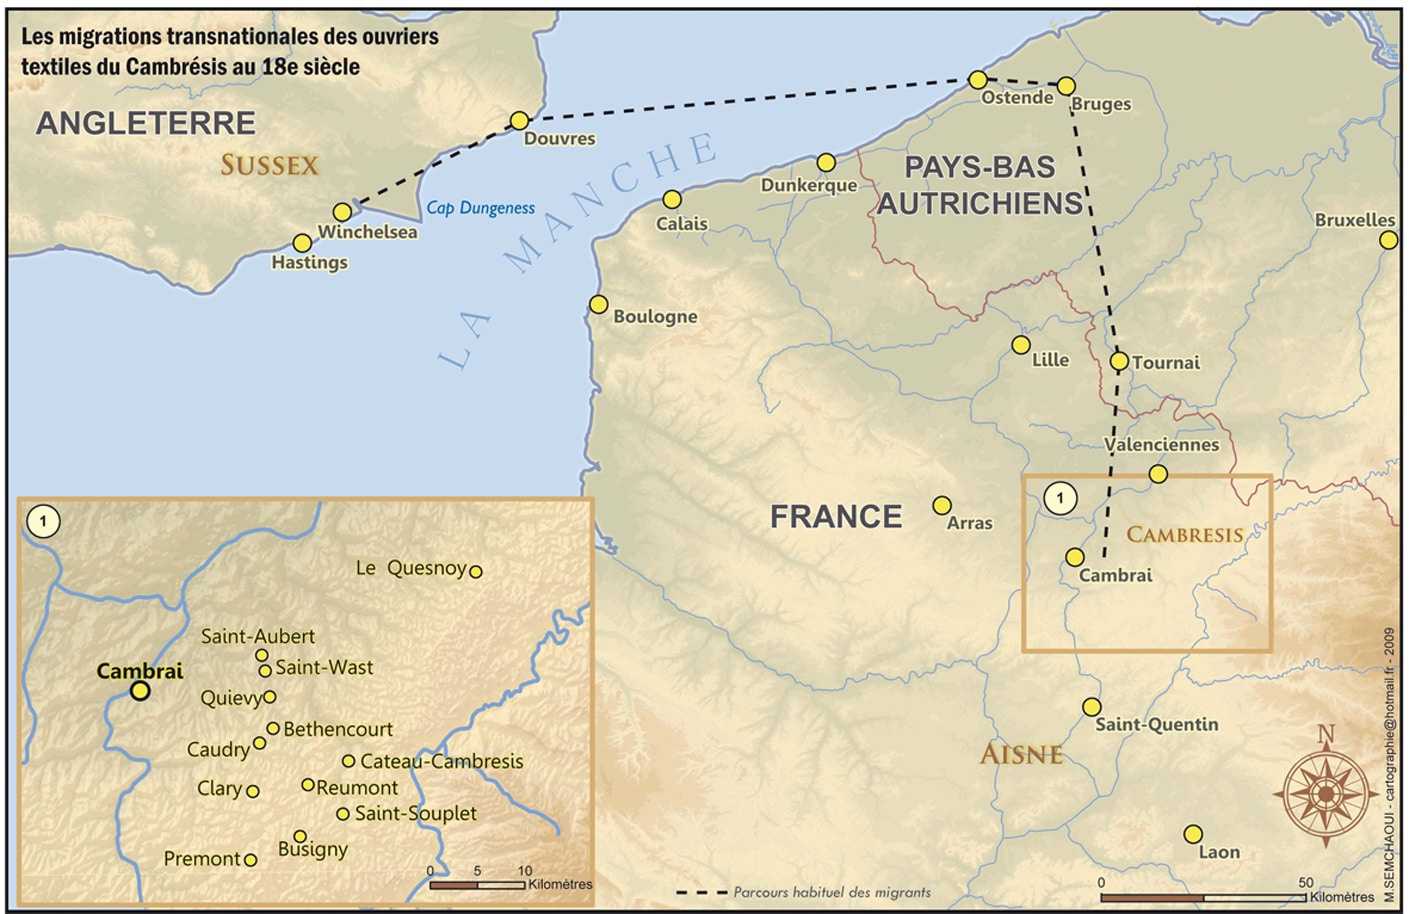 The route of the Huguenot migrants in 1760s